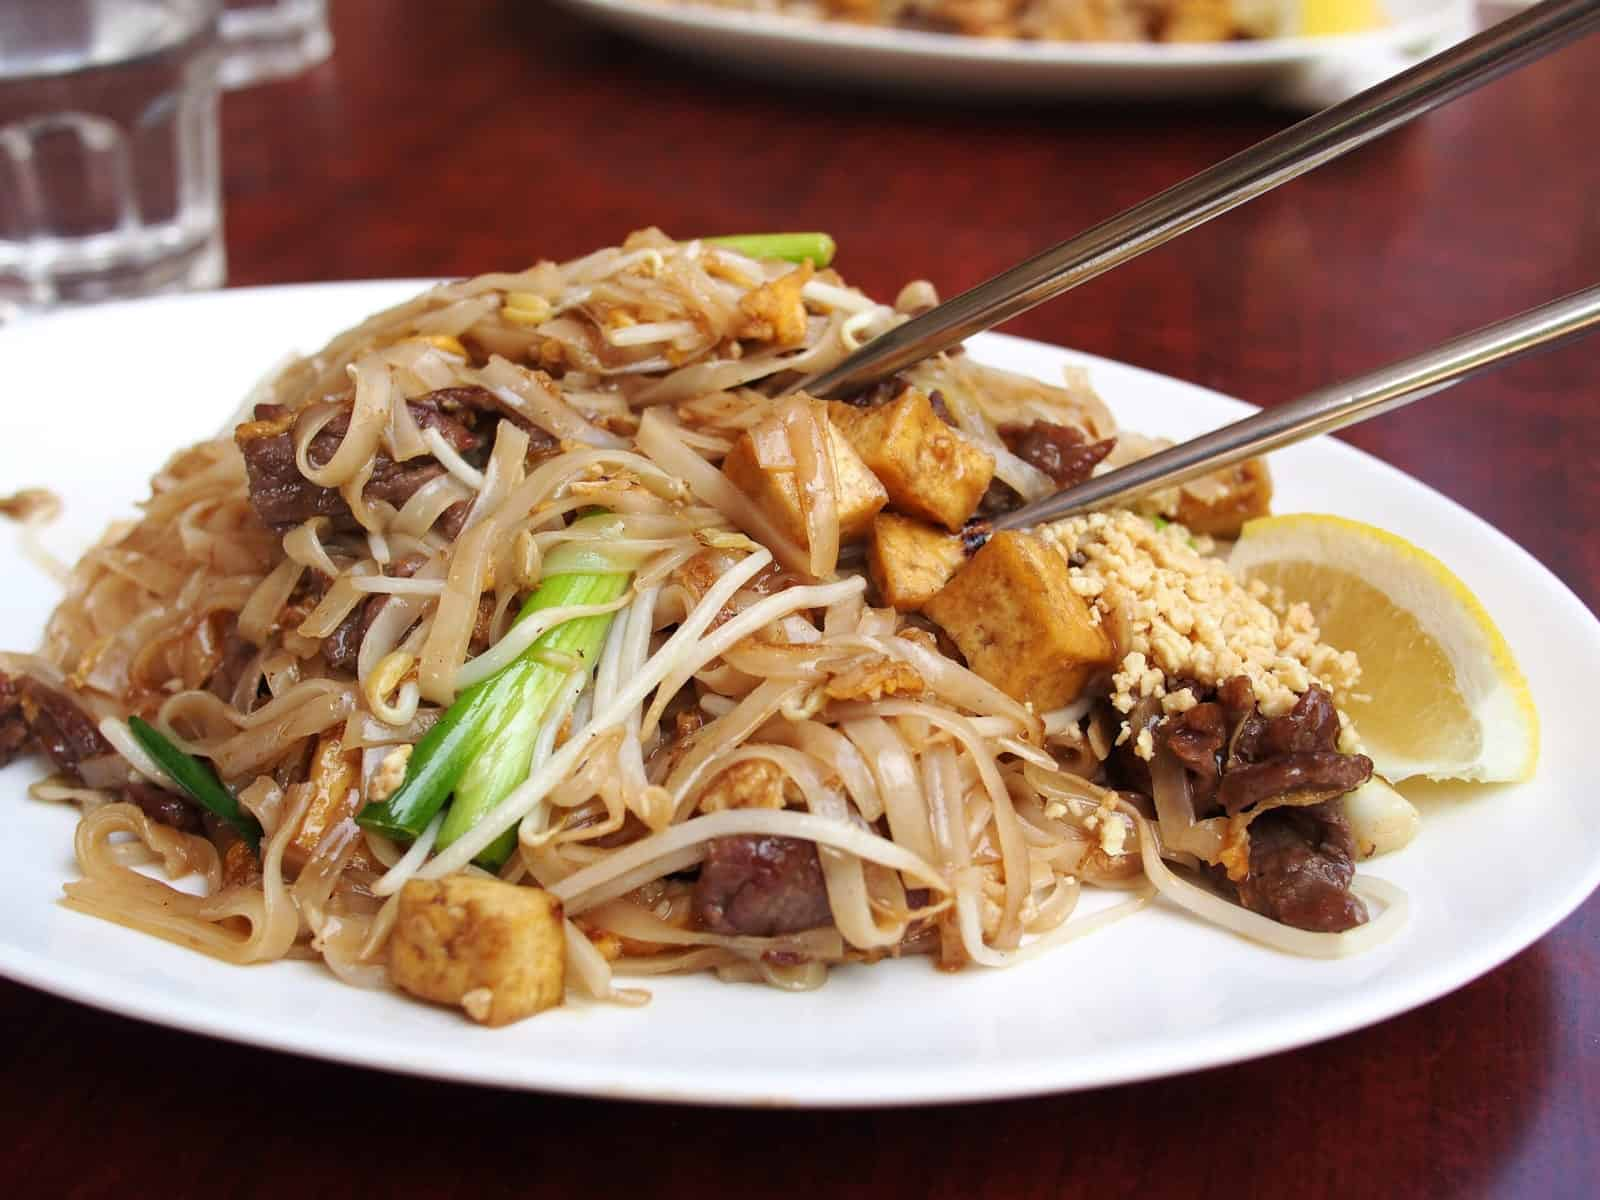 drunken noodles vs pad thai